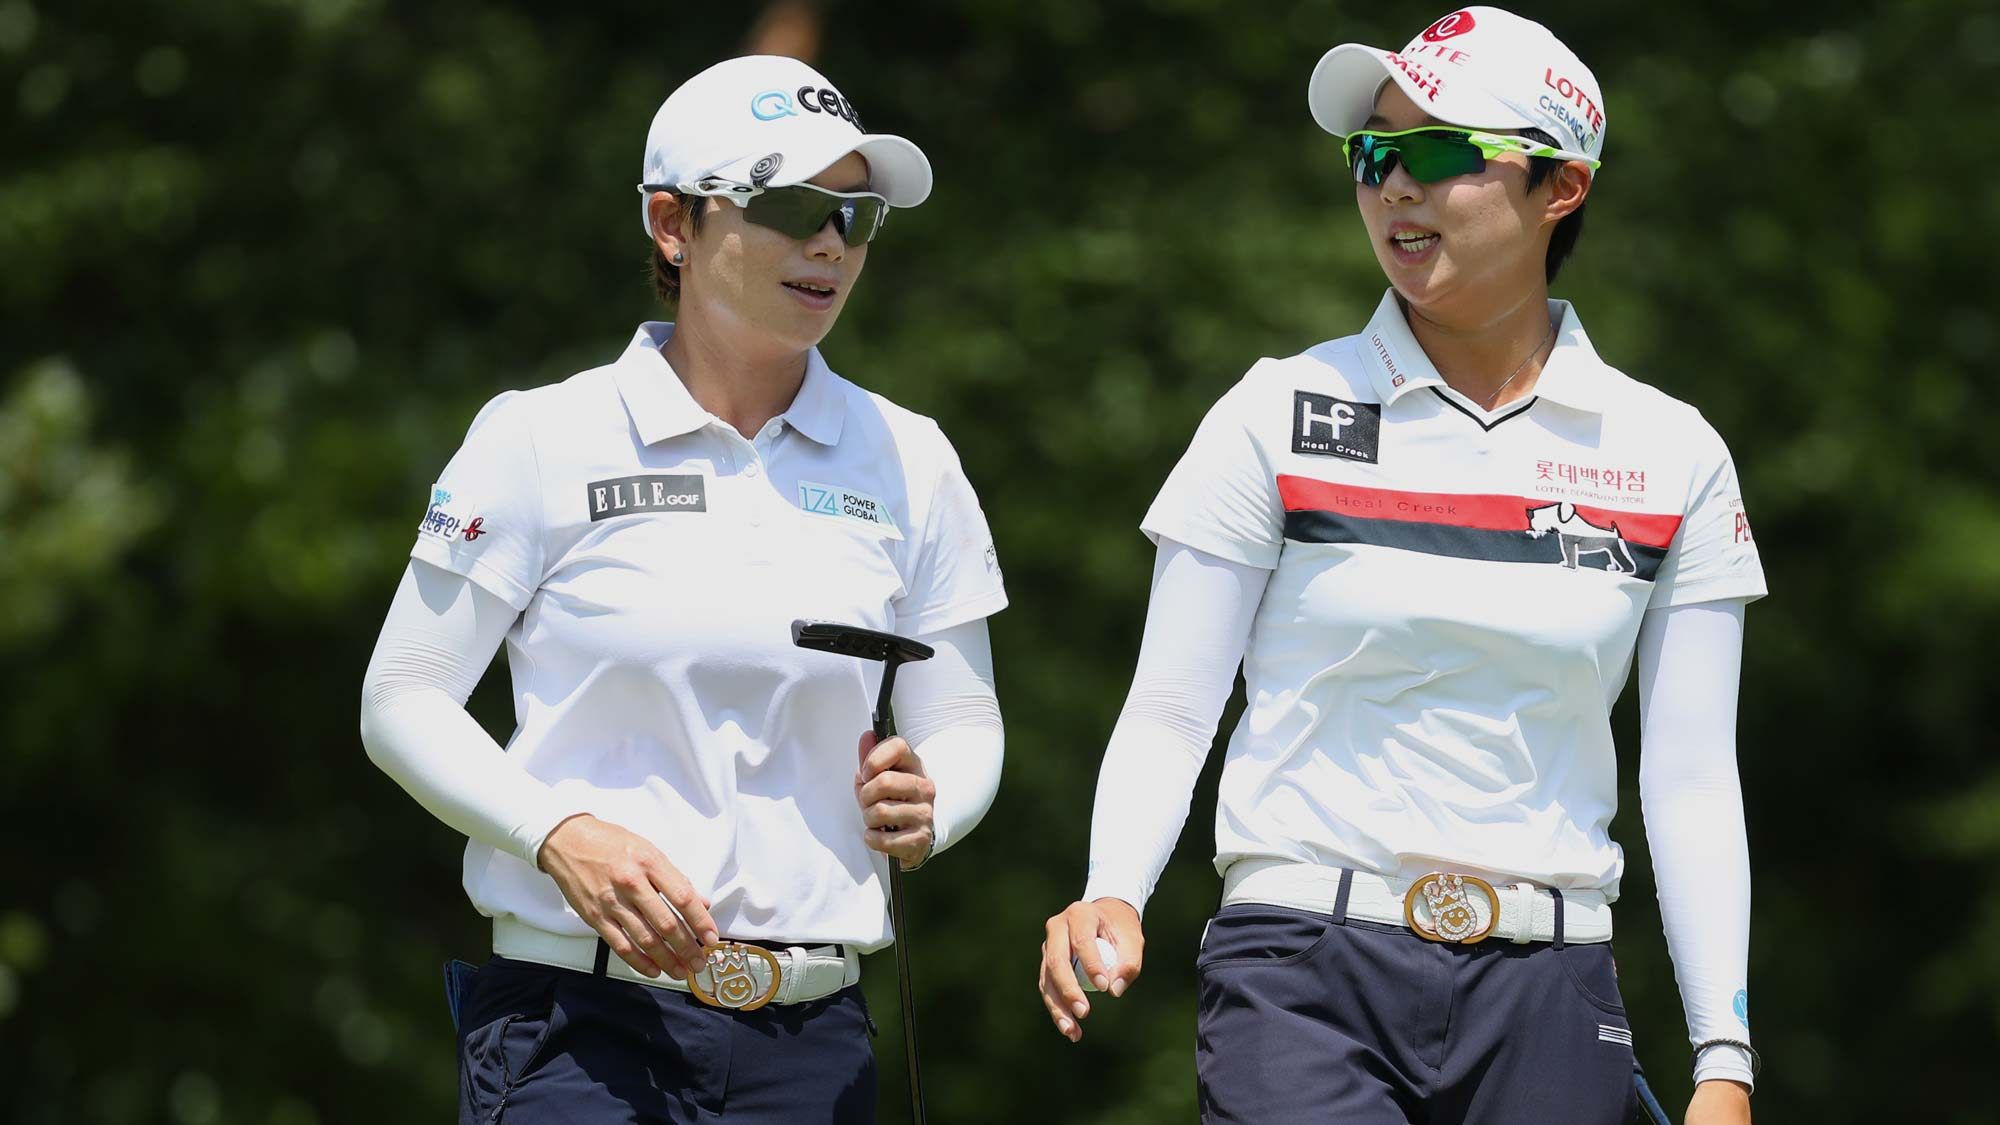 Teammates Hyo Joo Kim and Eun-Hee JI of South Korea walk off the sixth green during round three of the Dow Great Lakes Bay Invitational